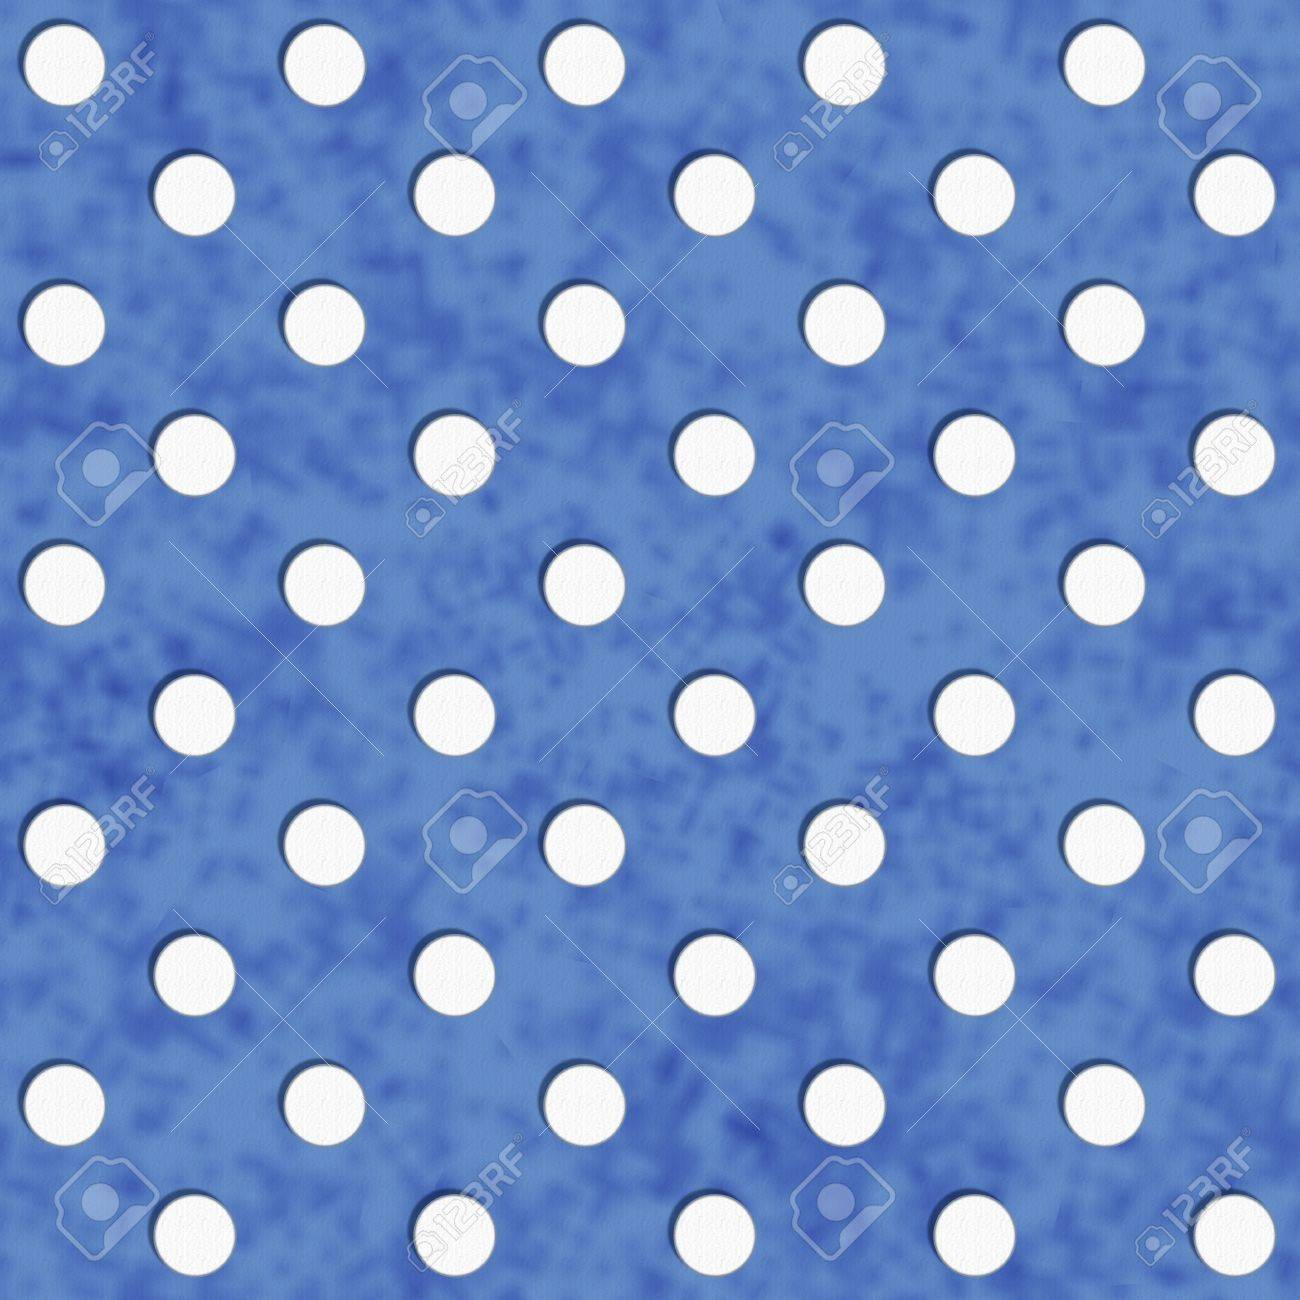 Navy Blue And White Polka Dot Fabric With Texture Background ...